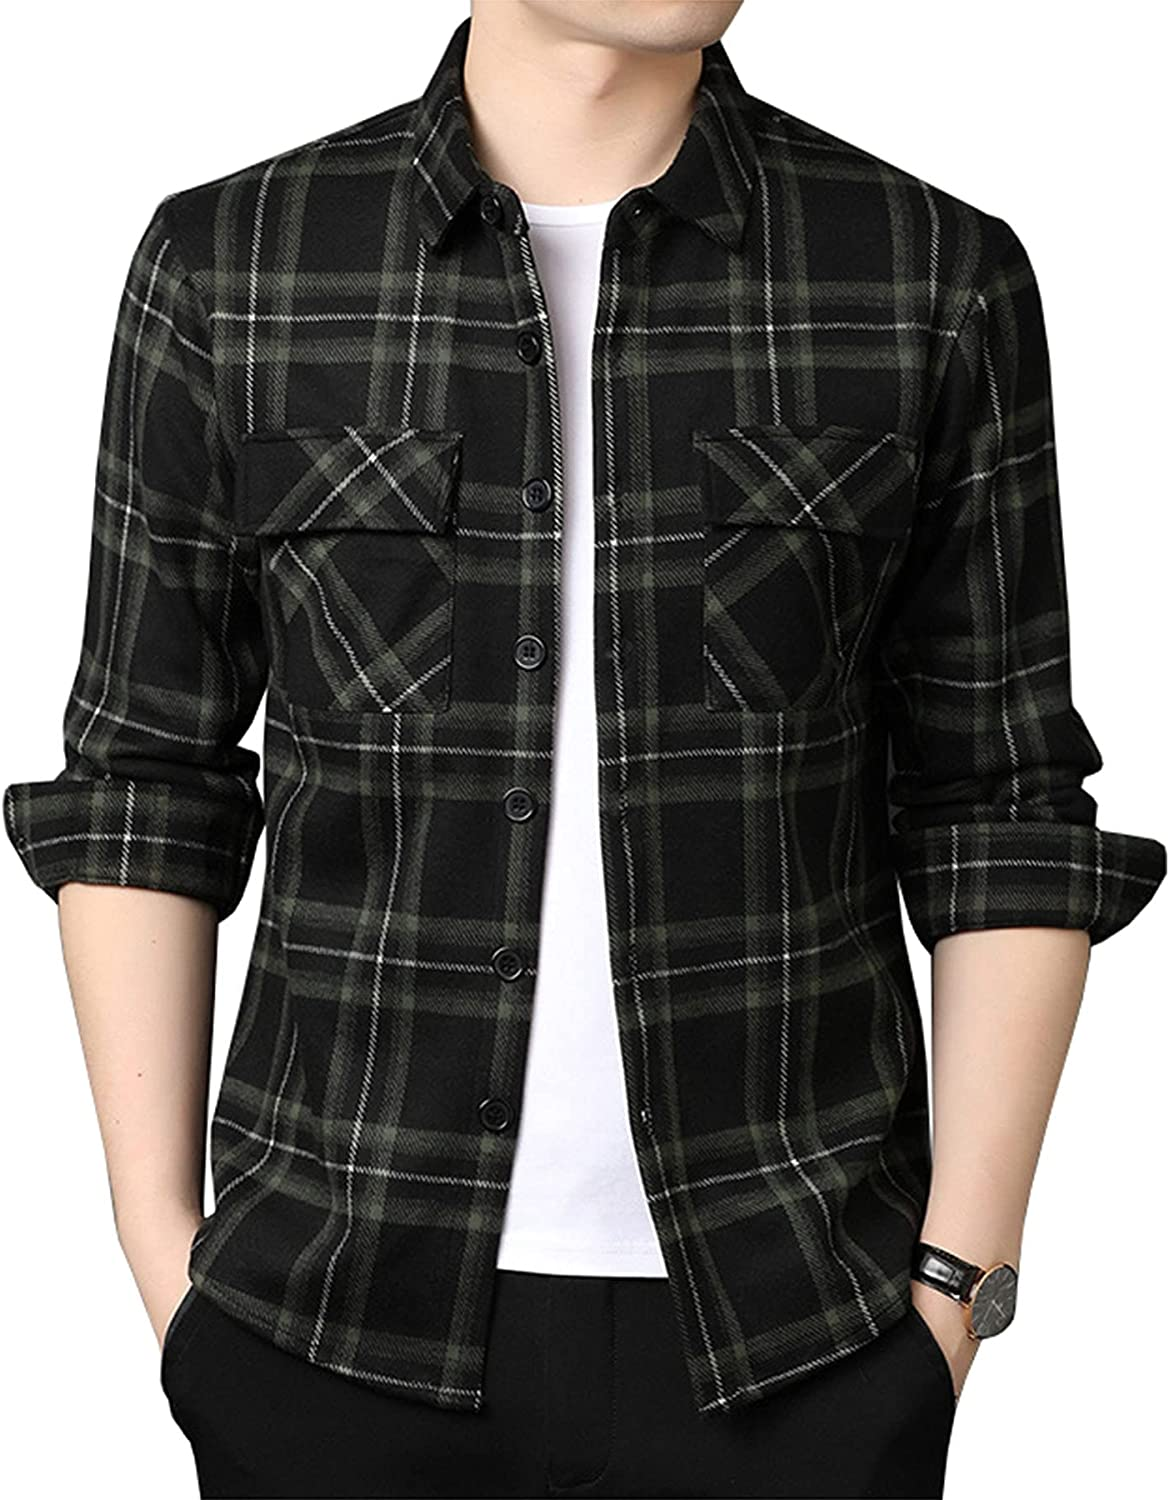 Men's Cargo Jackets Shirts Plaid Thicker Loose Casual Shirts Tooling Shirts Button-Down Collar Autumn Classic Red Plaid